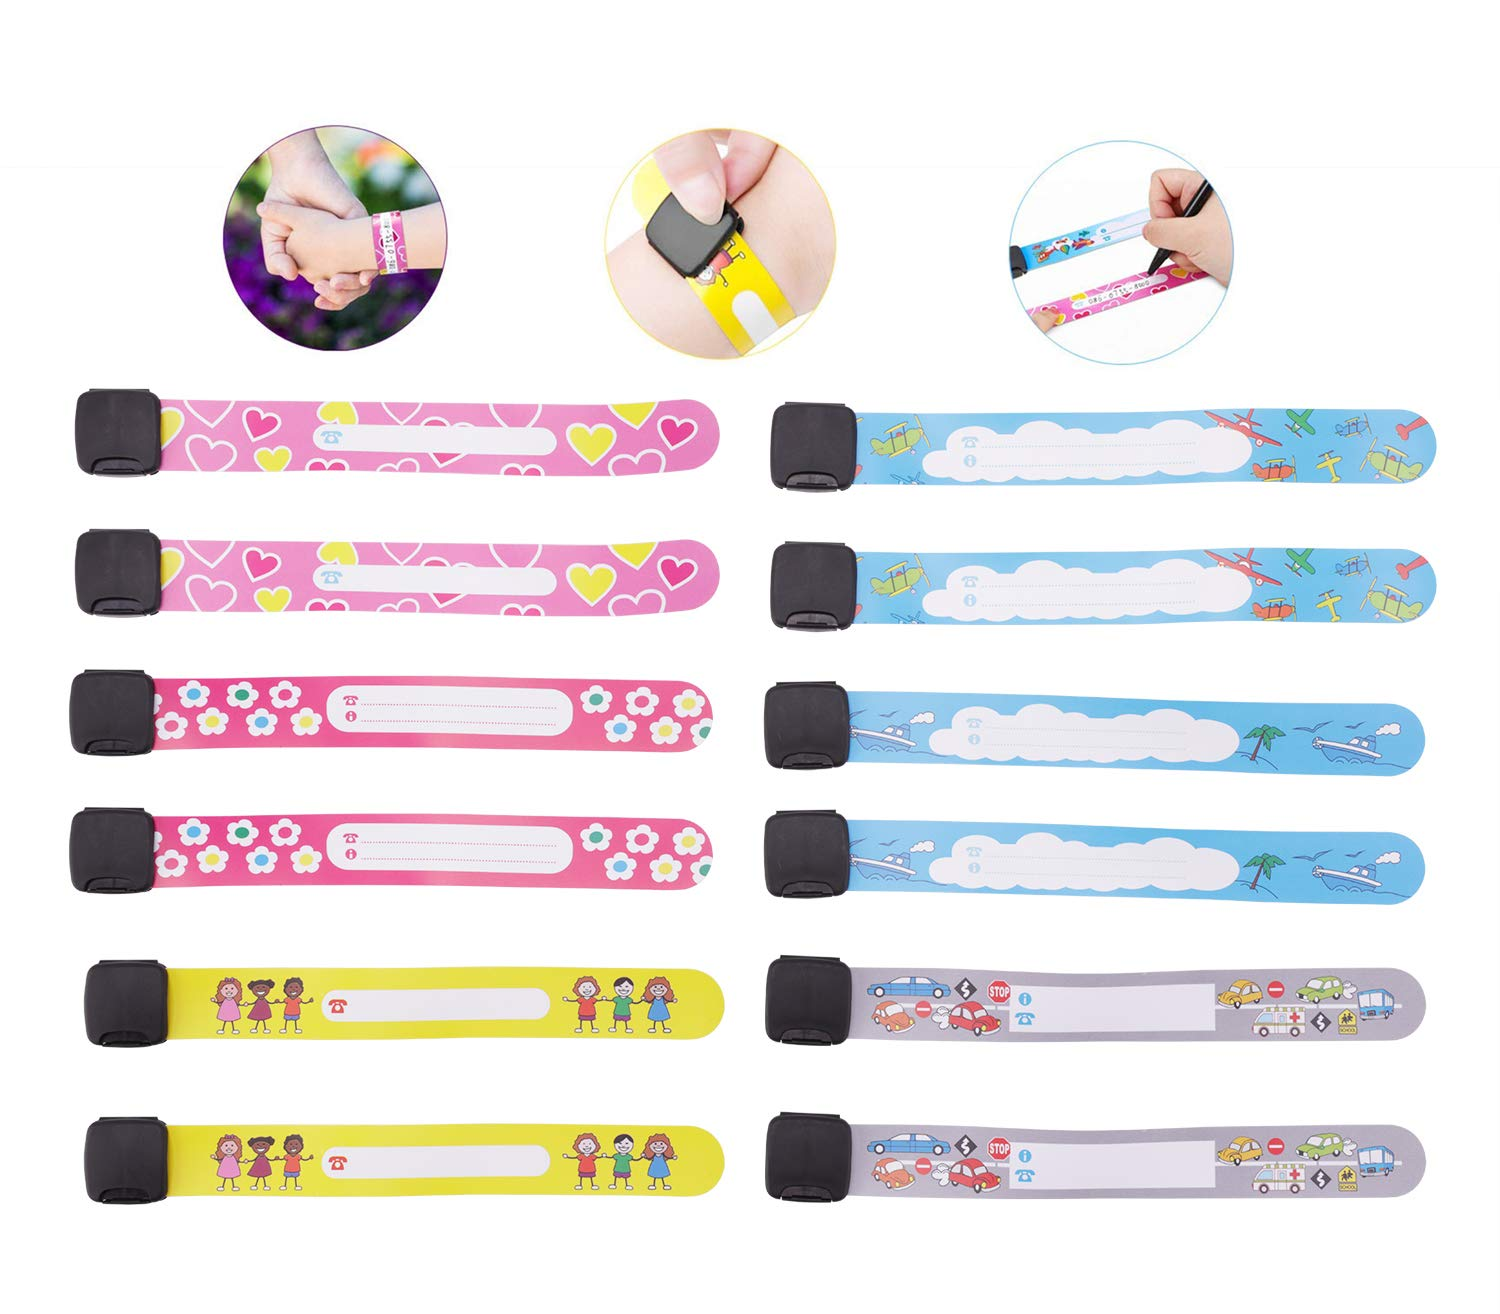 Child Safety ID Wristband, 12pcs Reusable&Waterproof Safety ID Bracelets for Kids Anti-Lost Child Travel ID Bands for Children Field Trip&Outdoor Activity